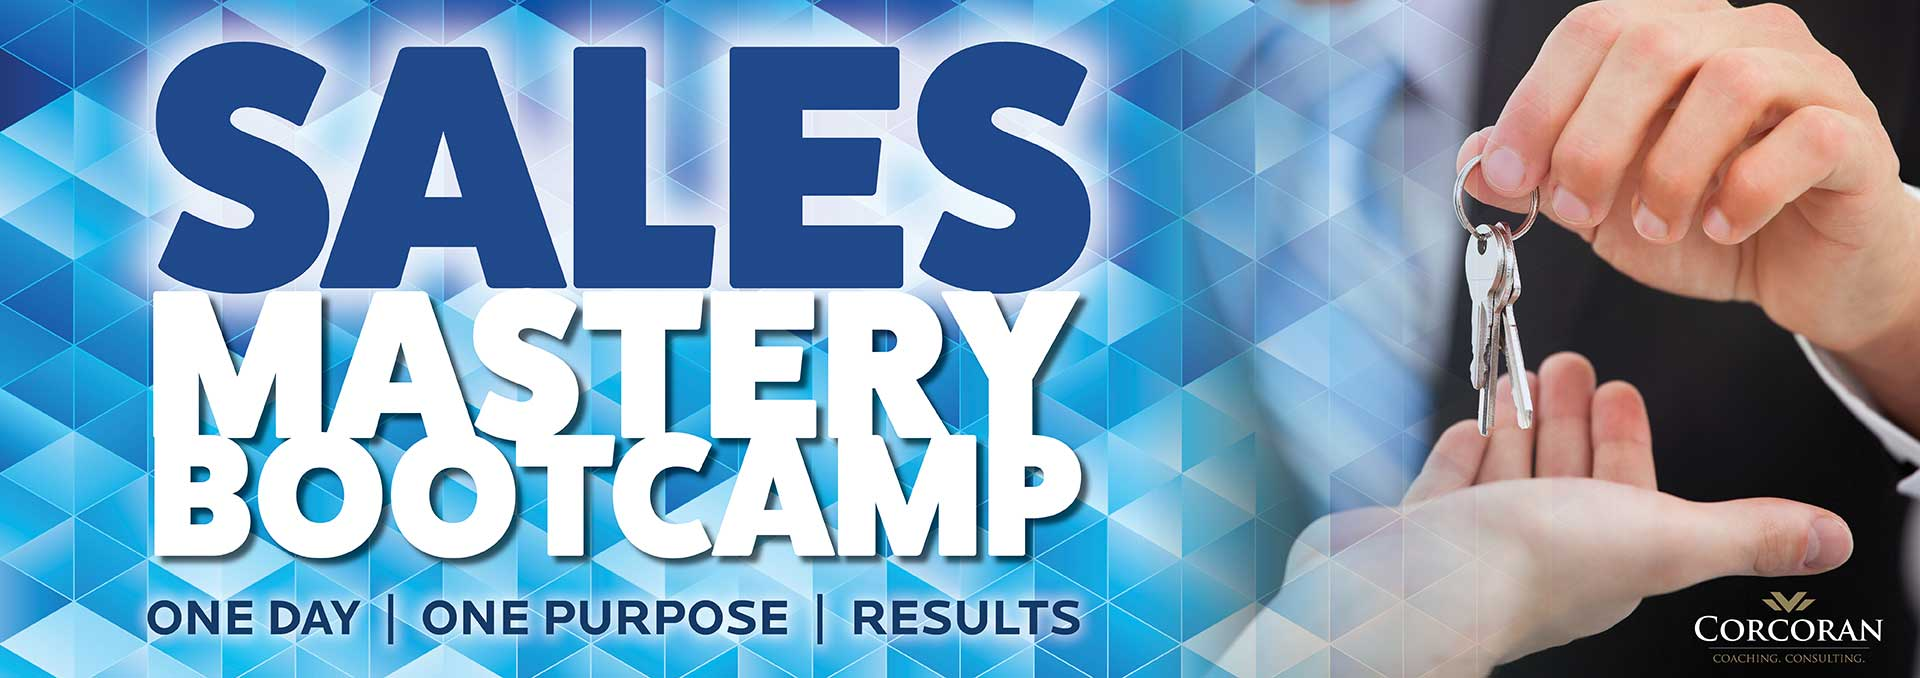 Corcoran Sales Mastery BootCamp